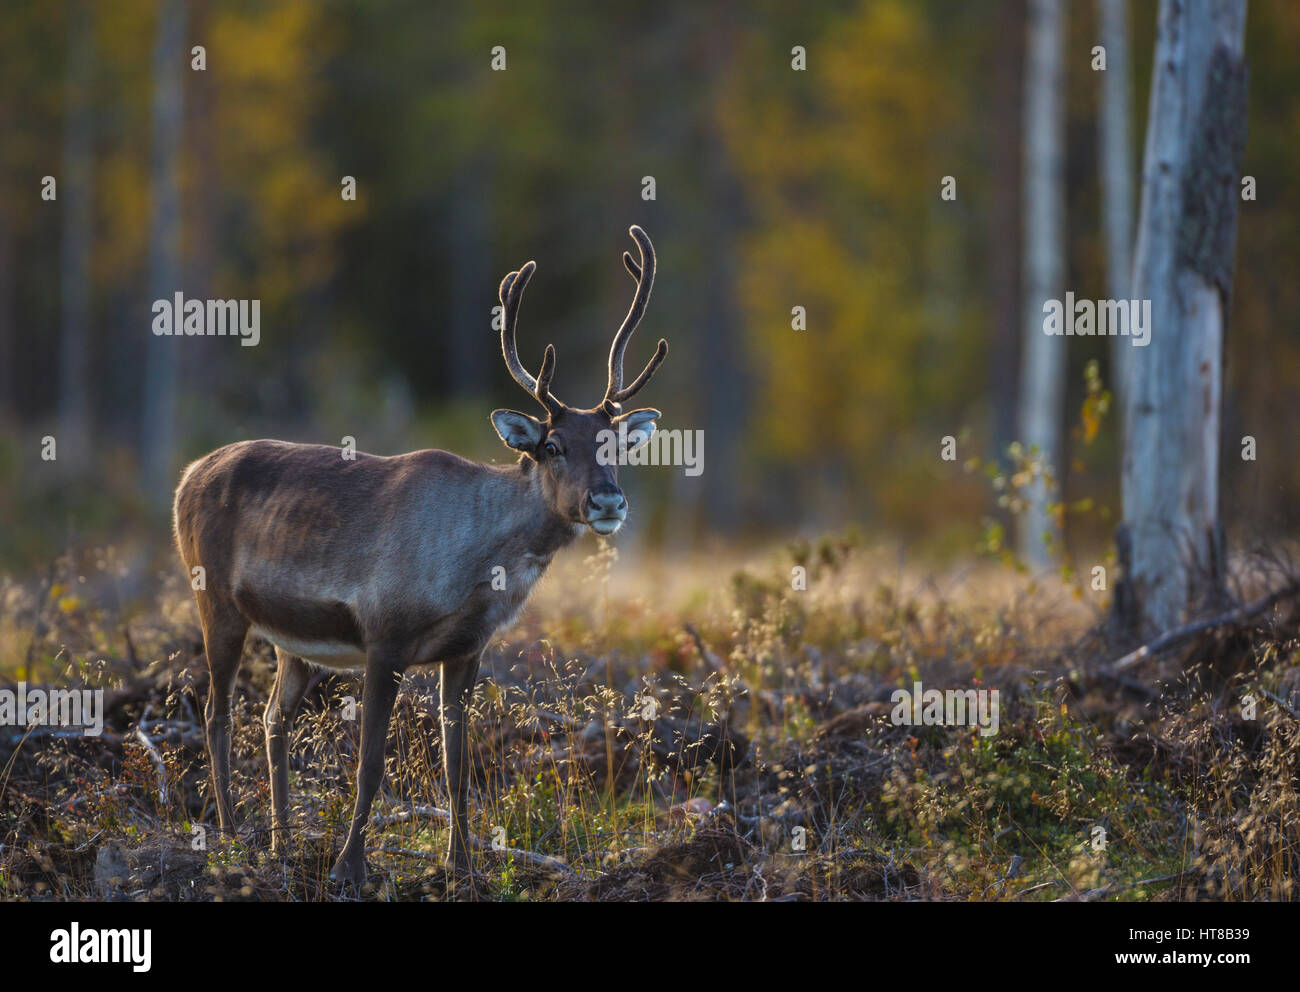 Reindeer in autumn season looking in to the camera and the forest having autumn colors, Gällivare, Swedish - Stock Image